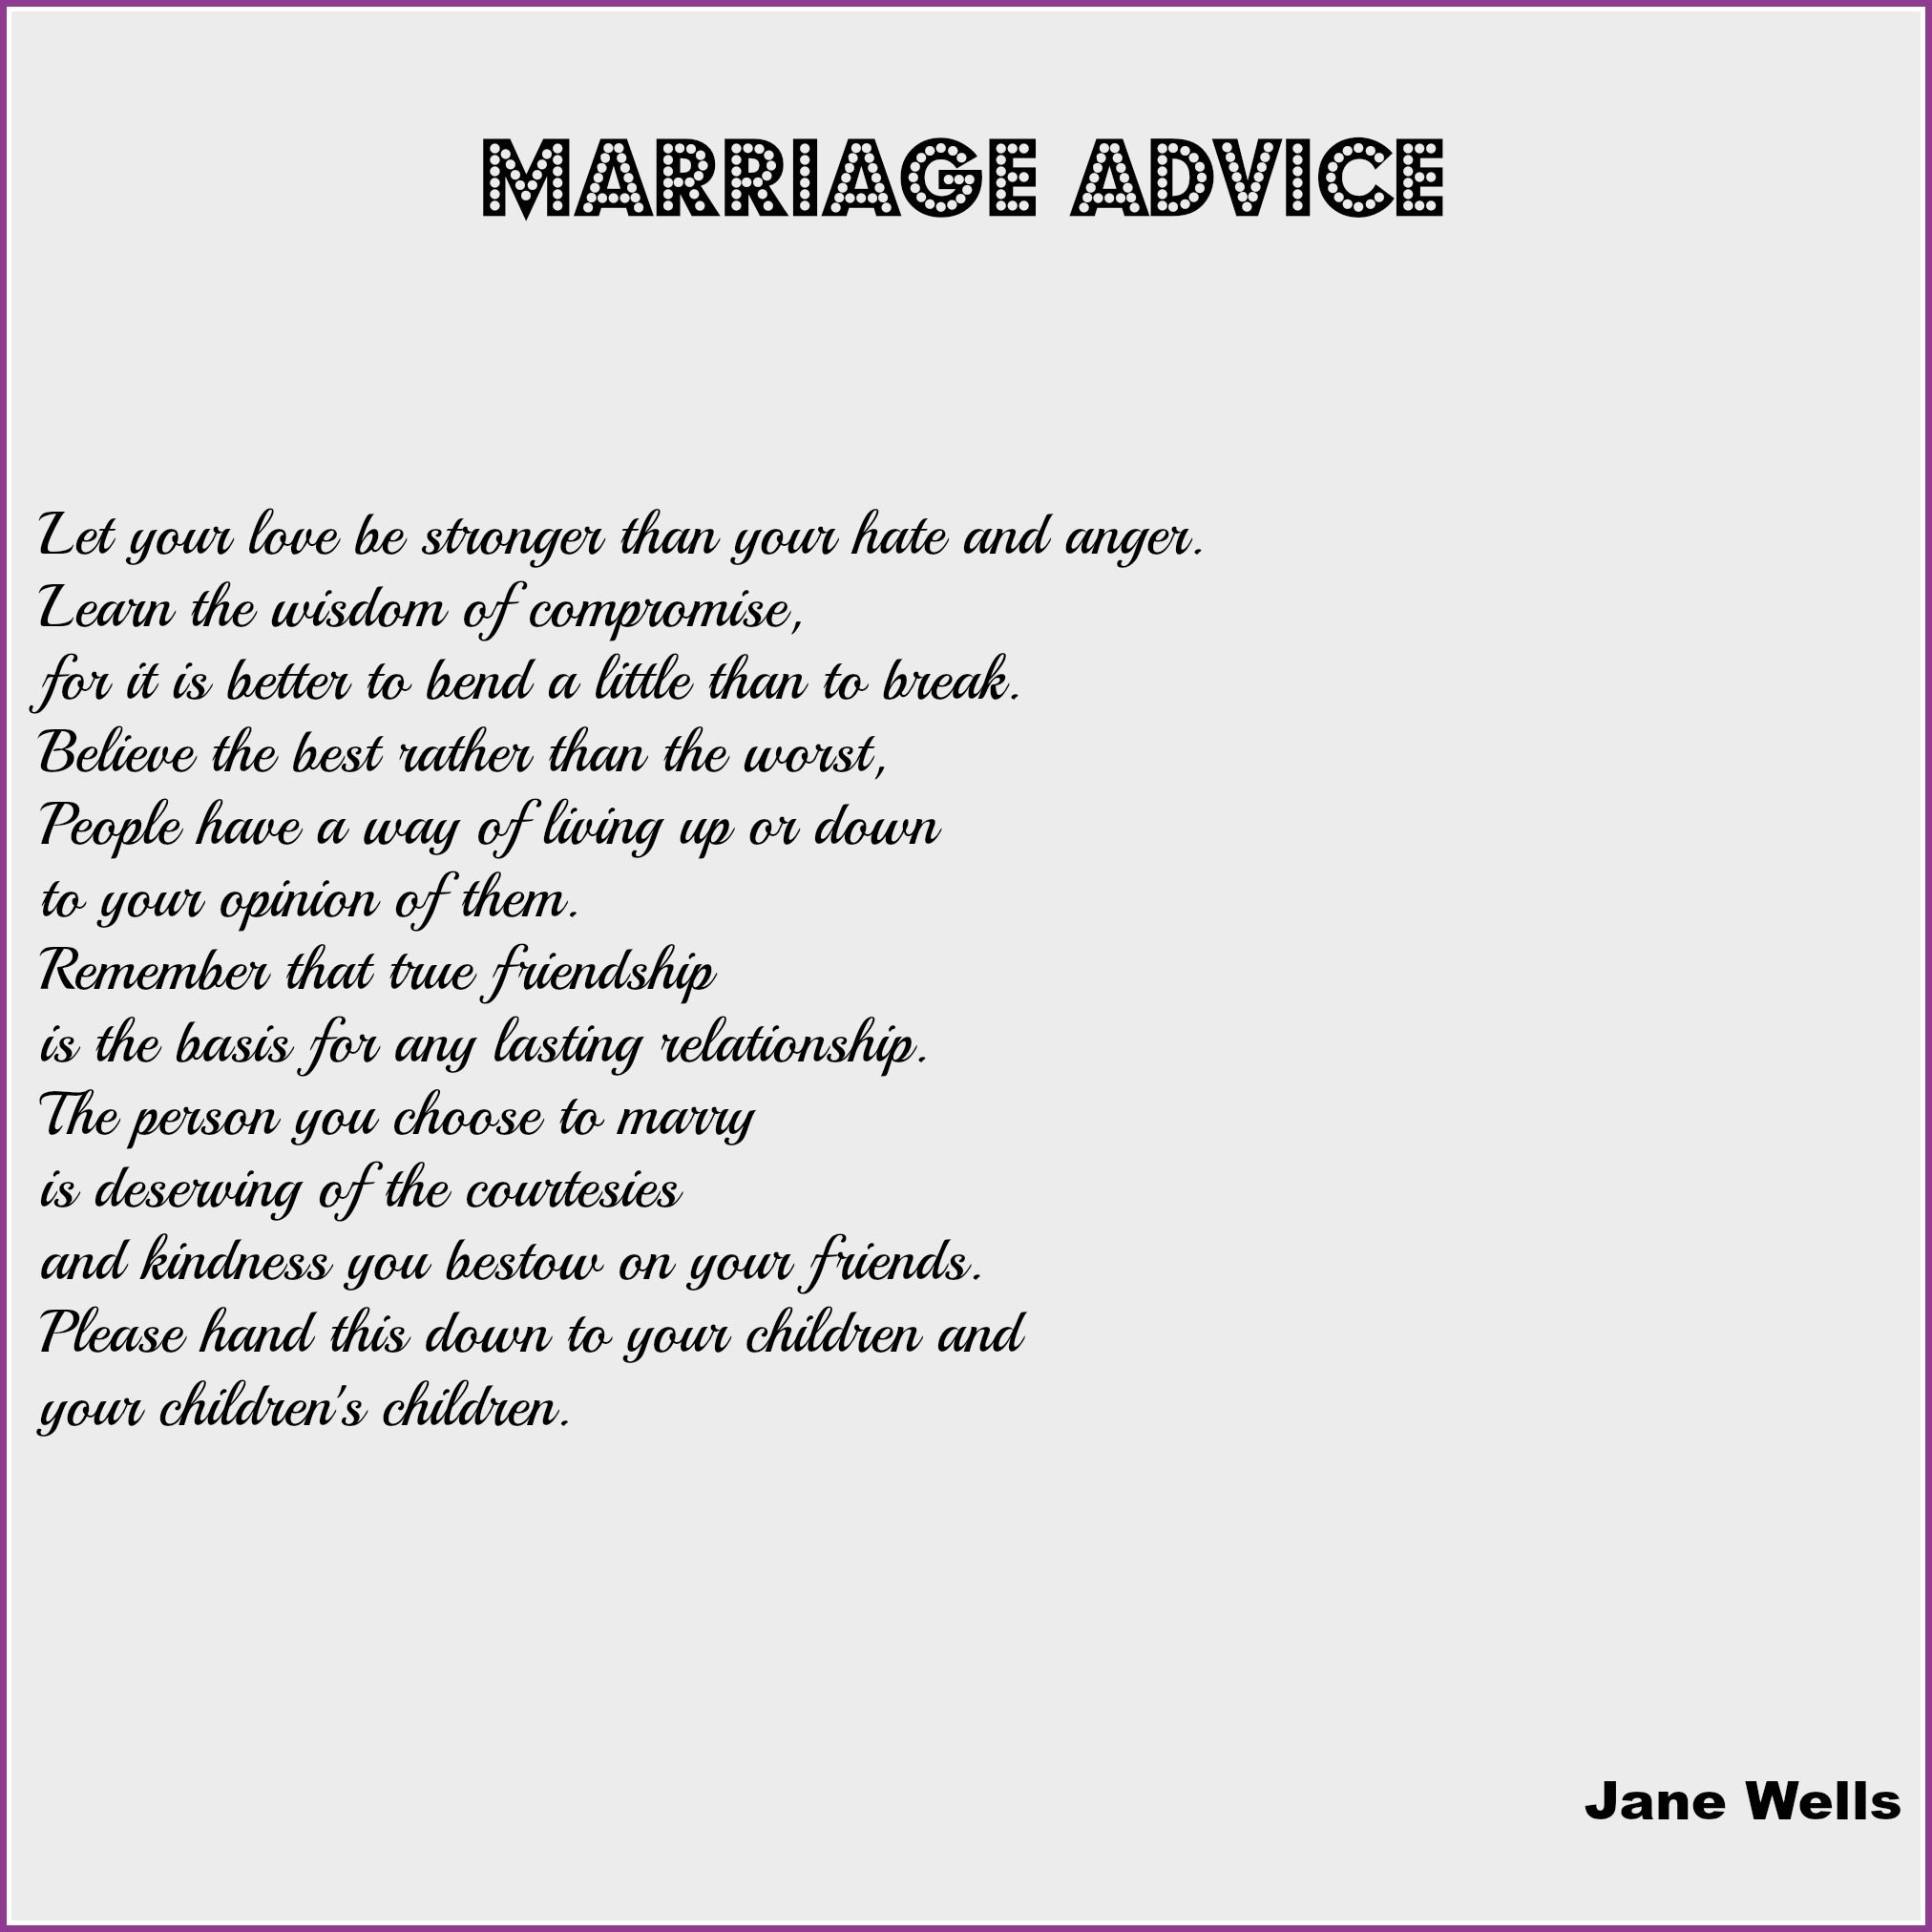 Wedding Reading Marriage Advice  Dream Occasions